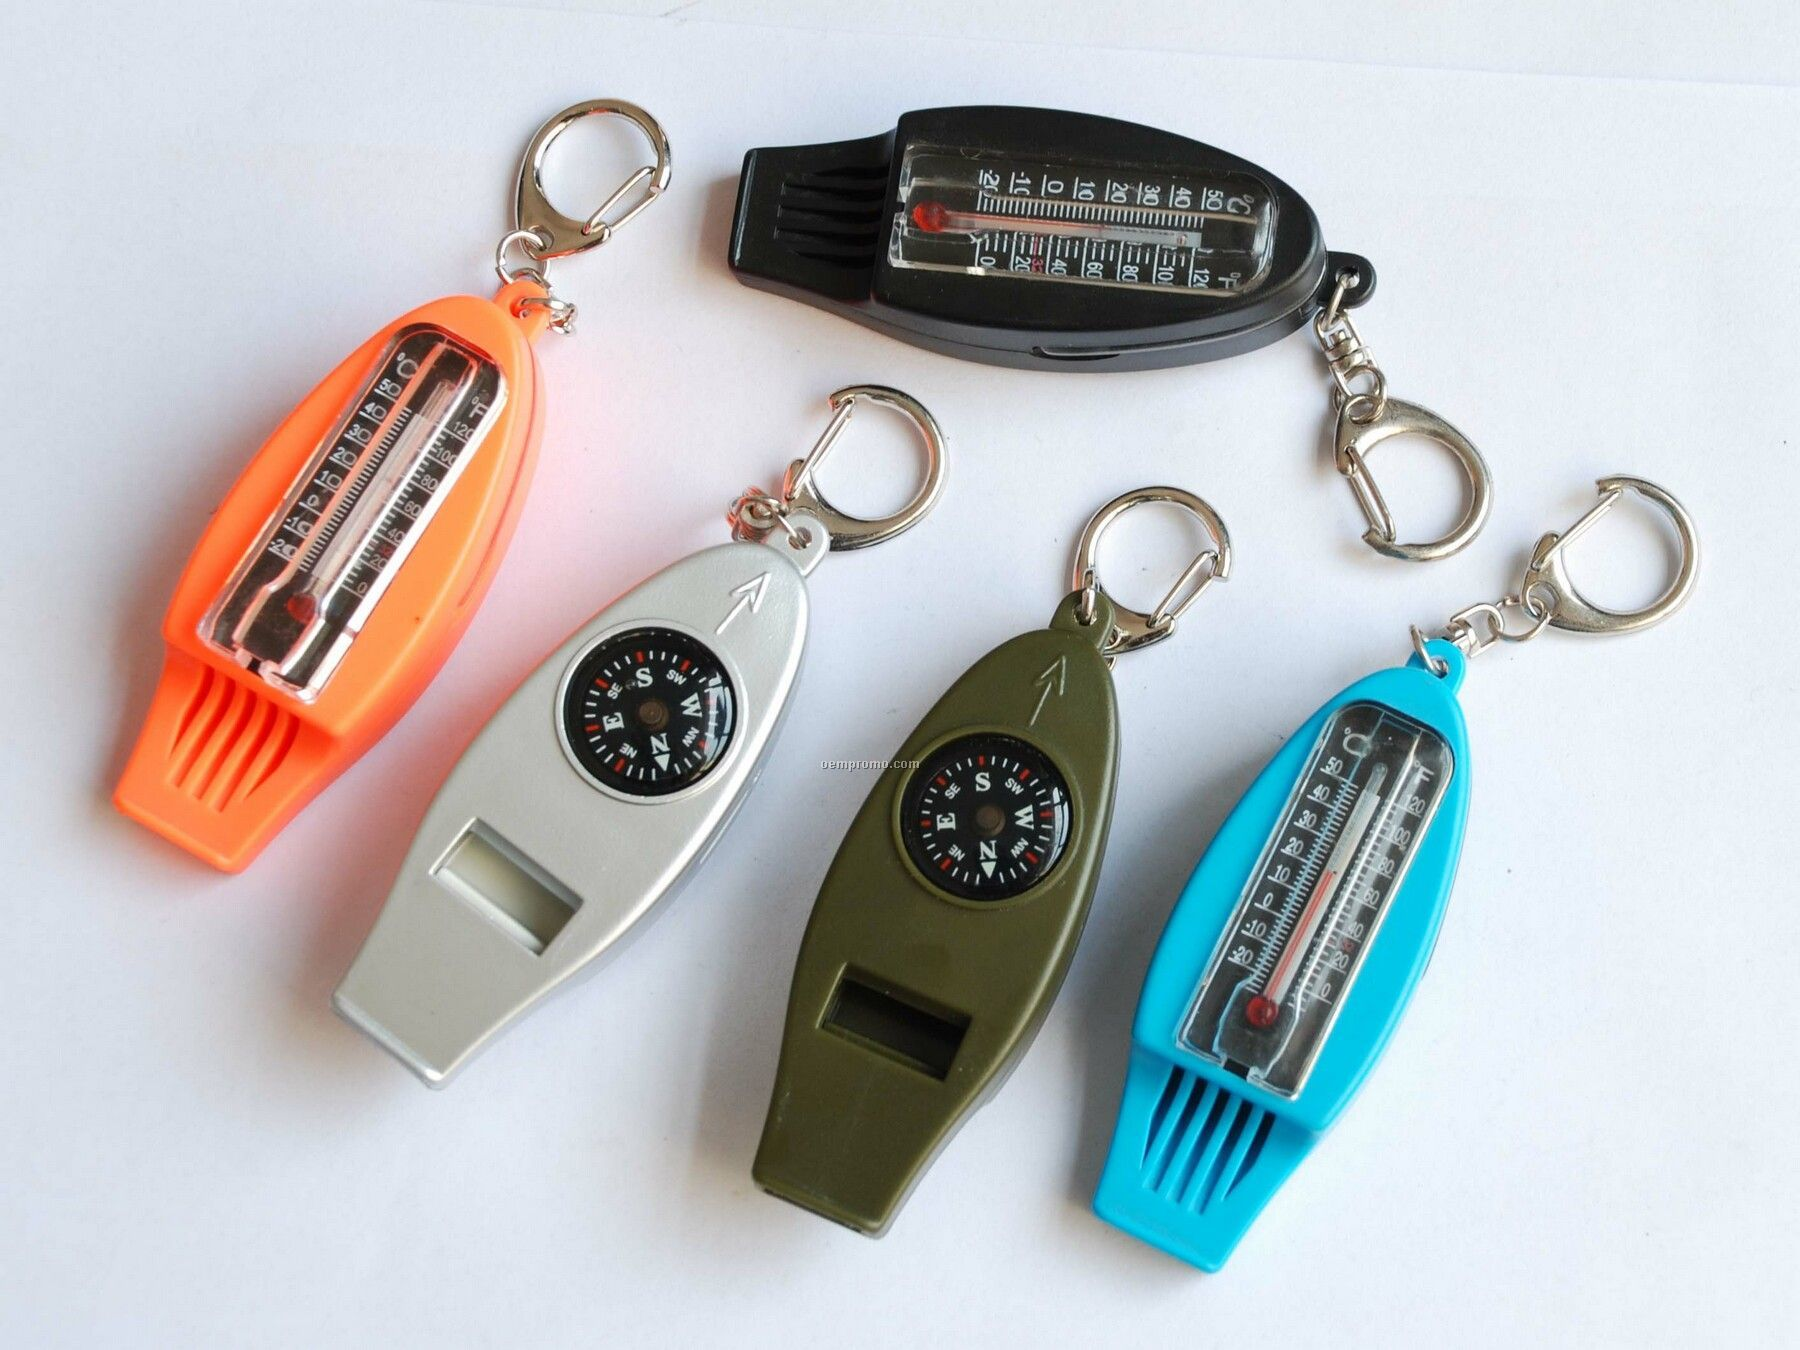 4 In 1 Survival Tool - Thermometer / Whistle / Compass / Key Chain